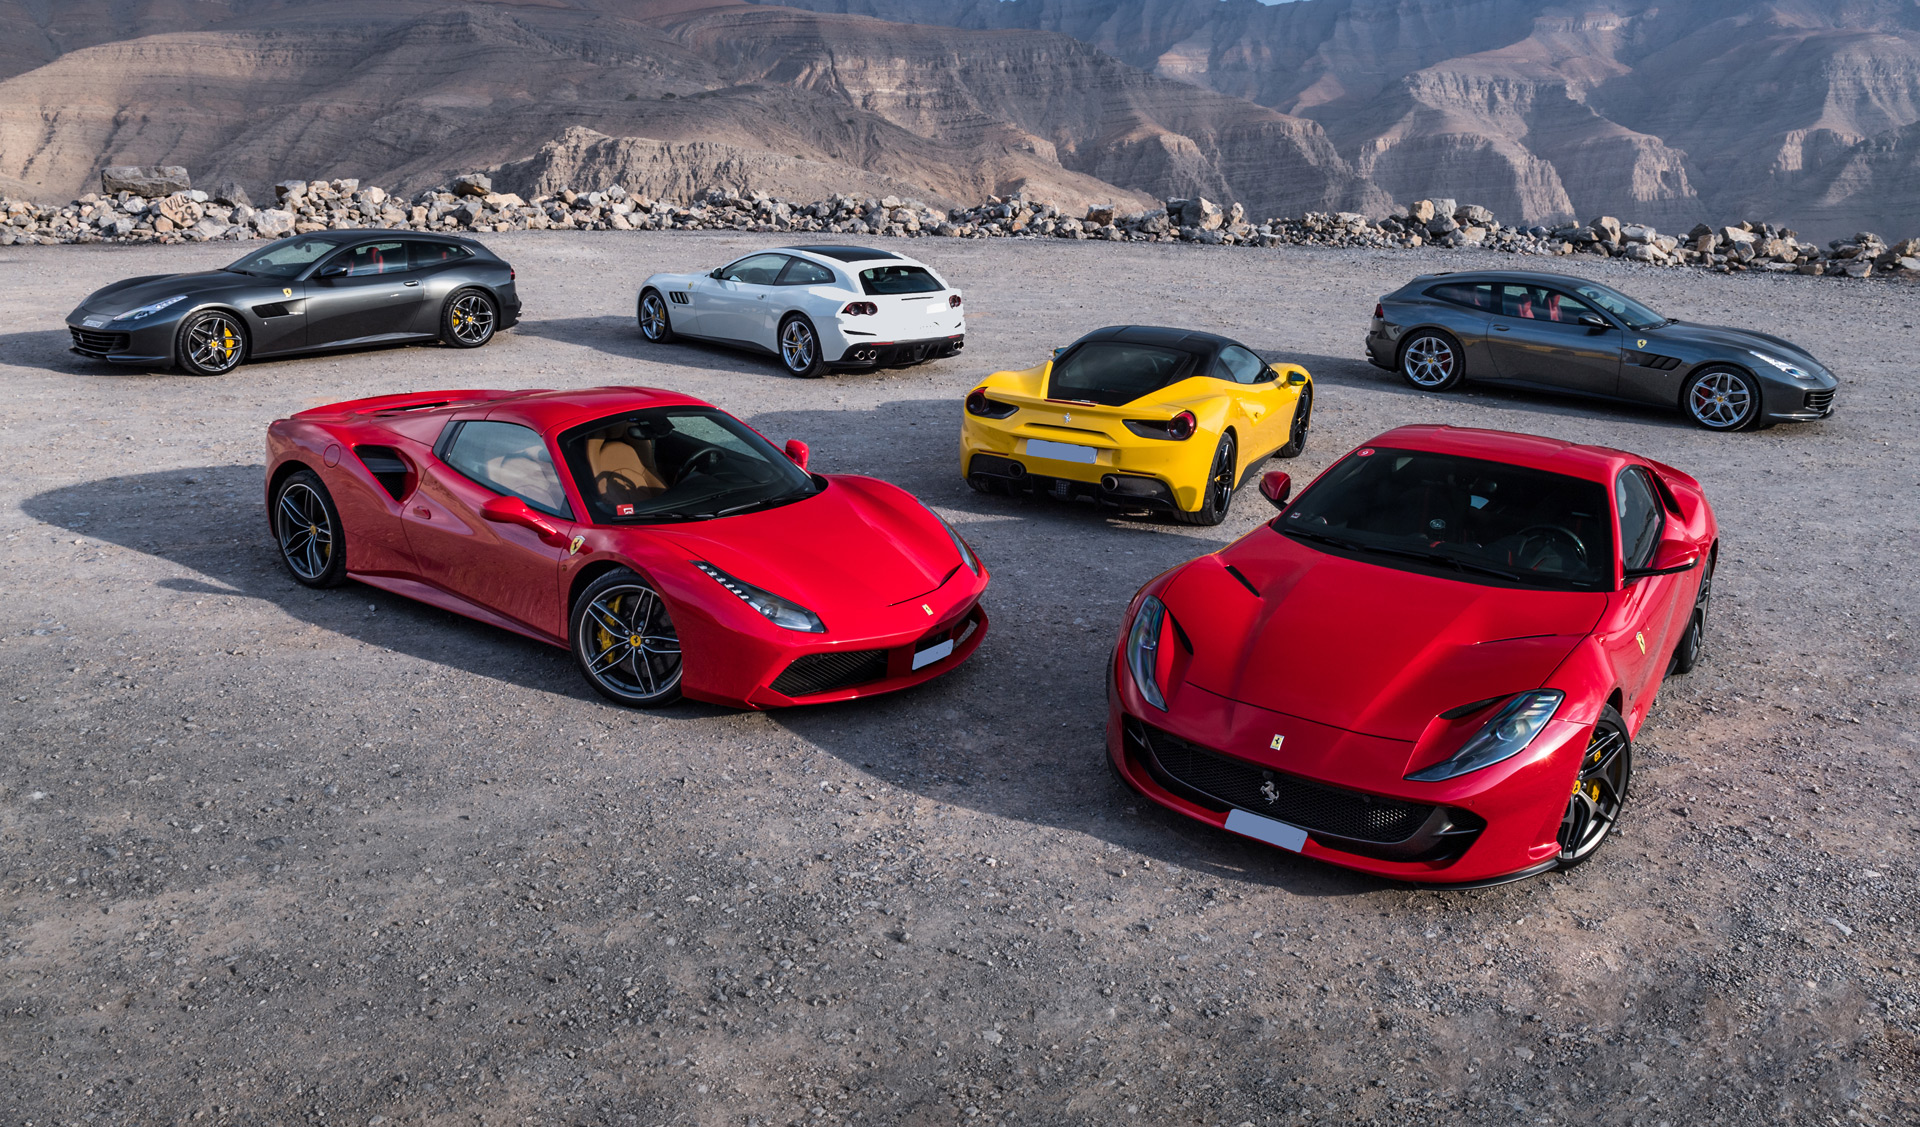 Fast Cars That Start With J >> The Official Ferrari 812 SUPERFAST pictures thread | Page 169 | FerrariChat - The world's ...